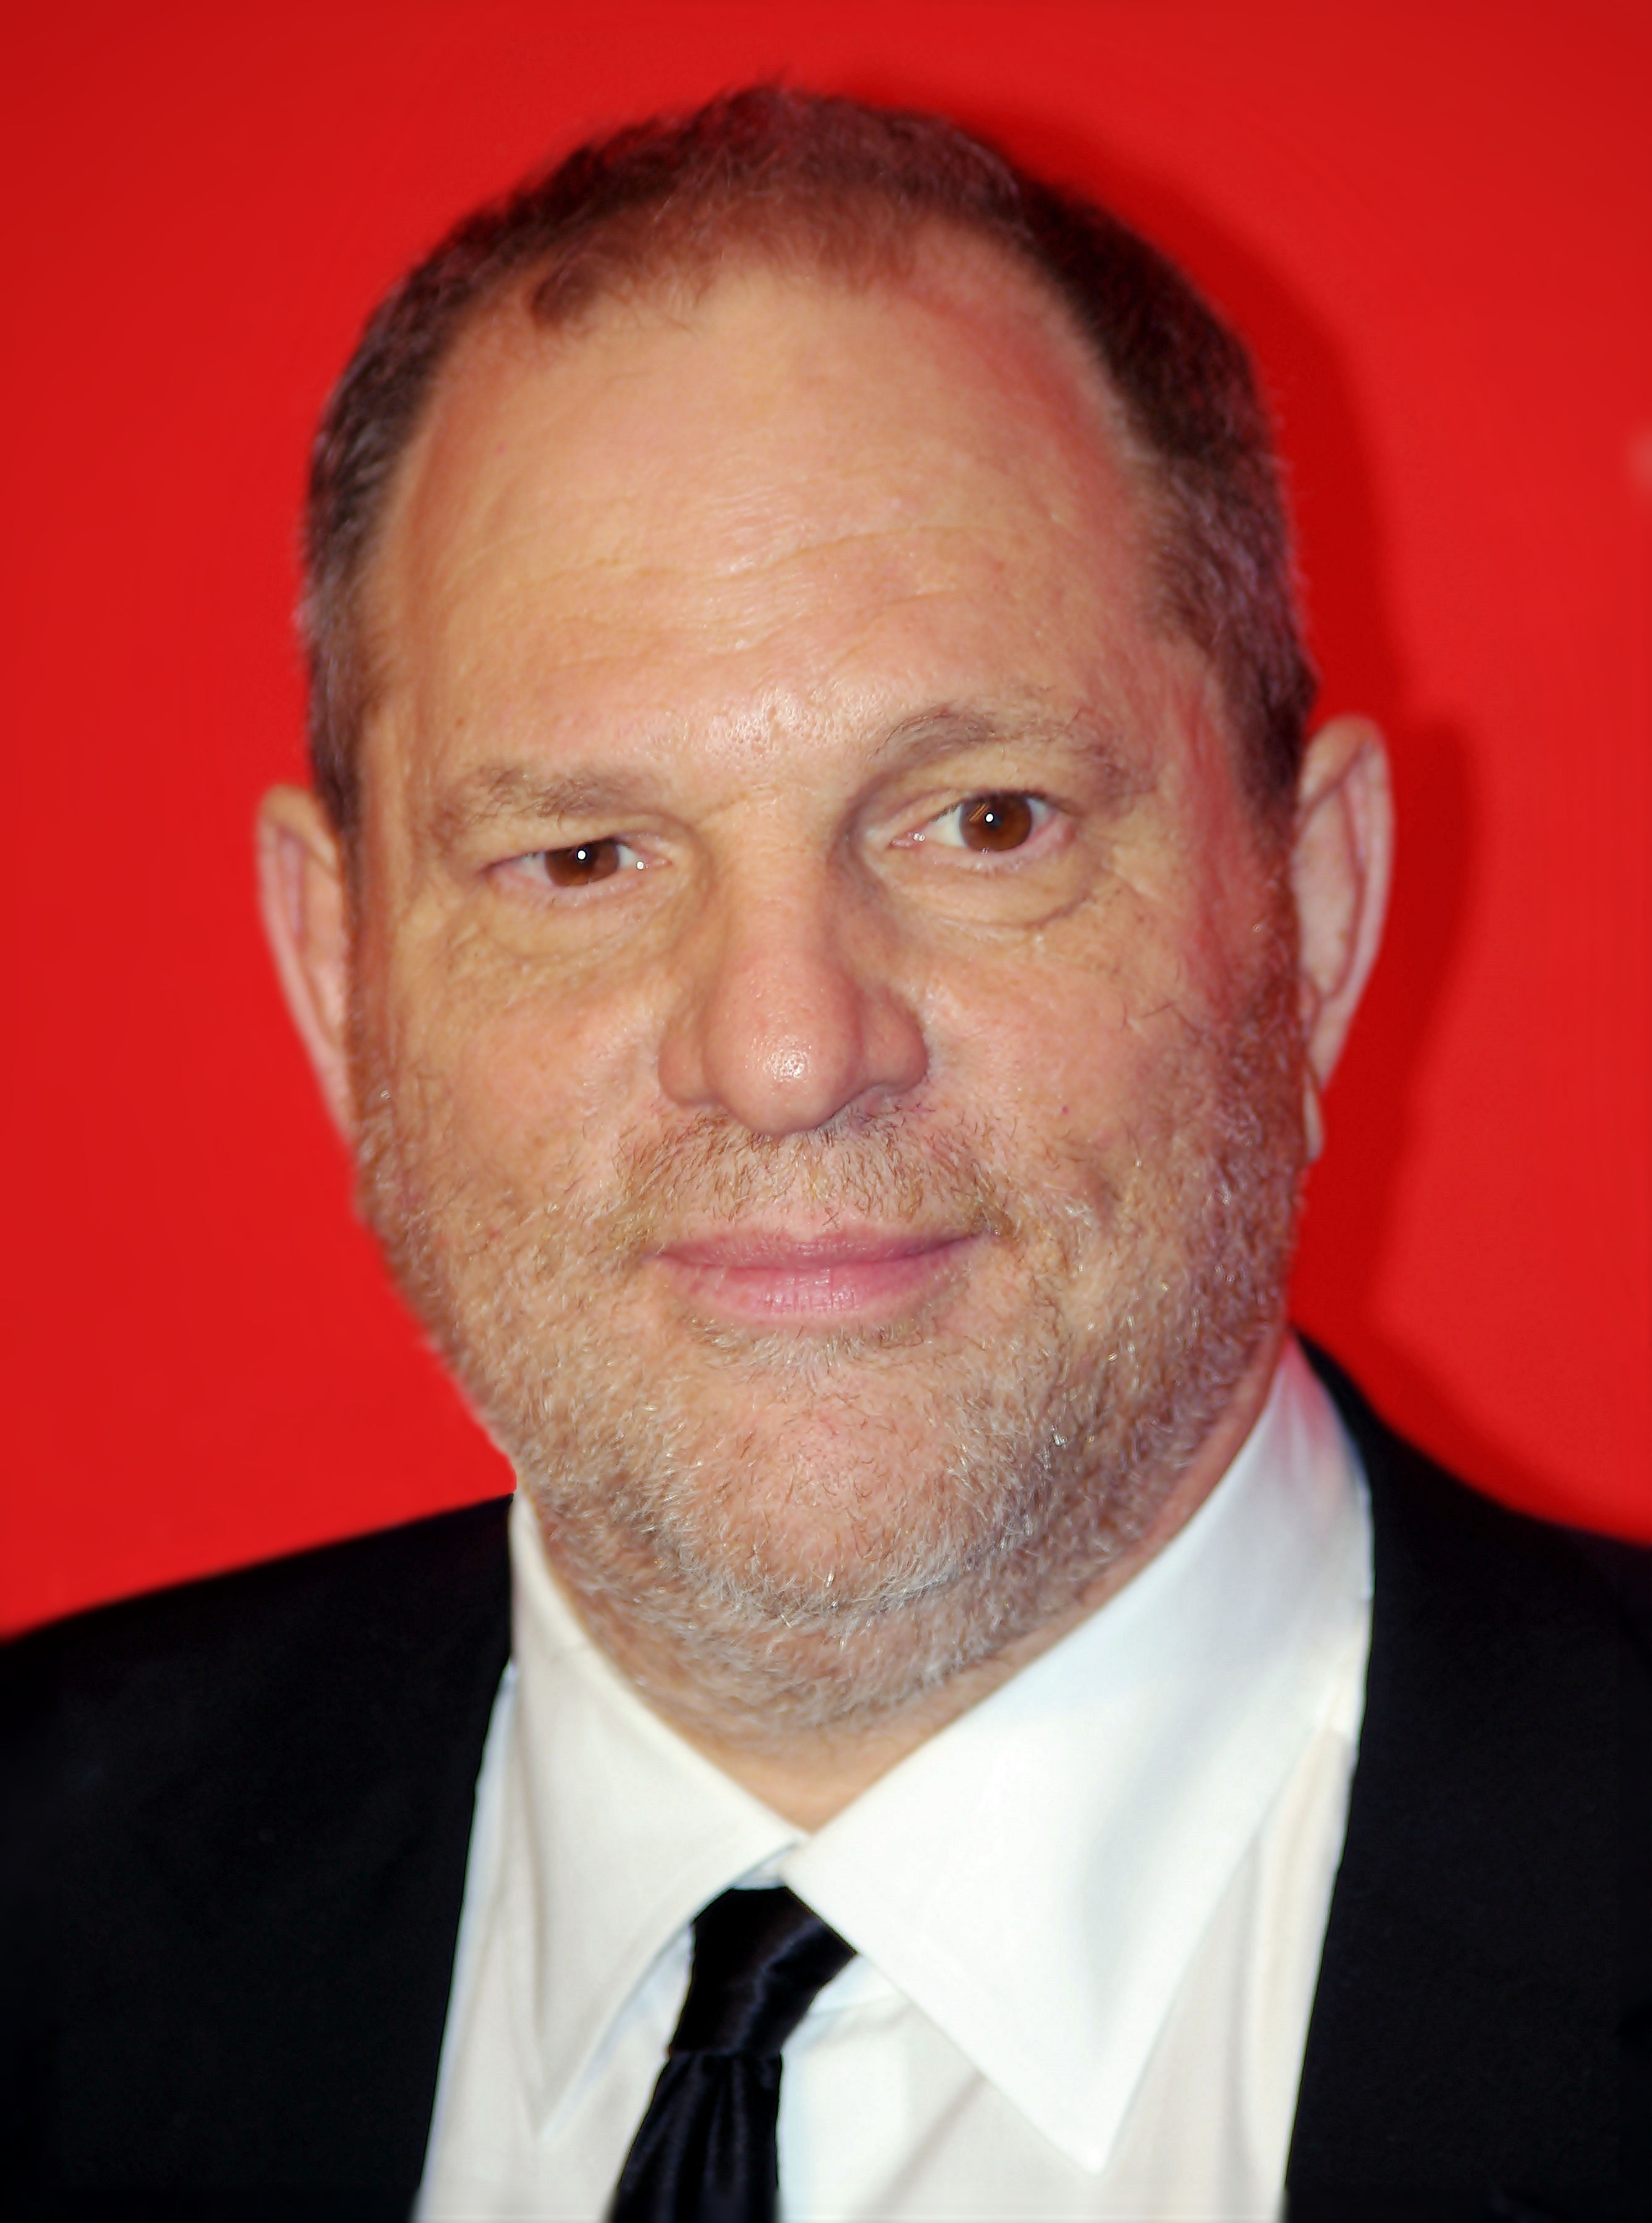 harvey weinstein moviesharvey weinstein entourage, harvey weinstein georgina chapman, harvey weinstein oscar, harvey weinstein hollywood, harvey weinstein zimbio, harvey weinstein lovers, harvey weinstein net worth, harvey weinstein interview, harvey weinstein quentin tarantino, harvey weinstein imdb, harvey weinstein movies, harvey weinstein tarantino, harvey weinstein wife, harvey weinstein company, harvey weinstein oscar campaign, harvey weinstein instagram, harvey weinstein contact info